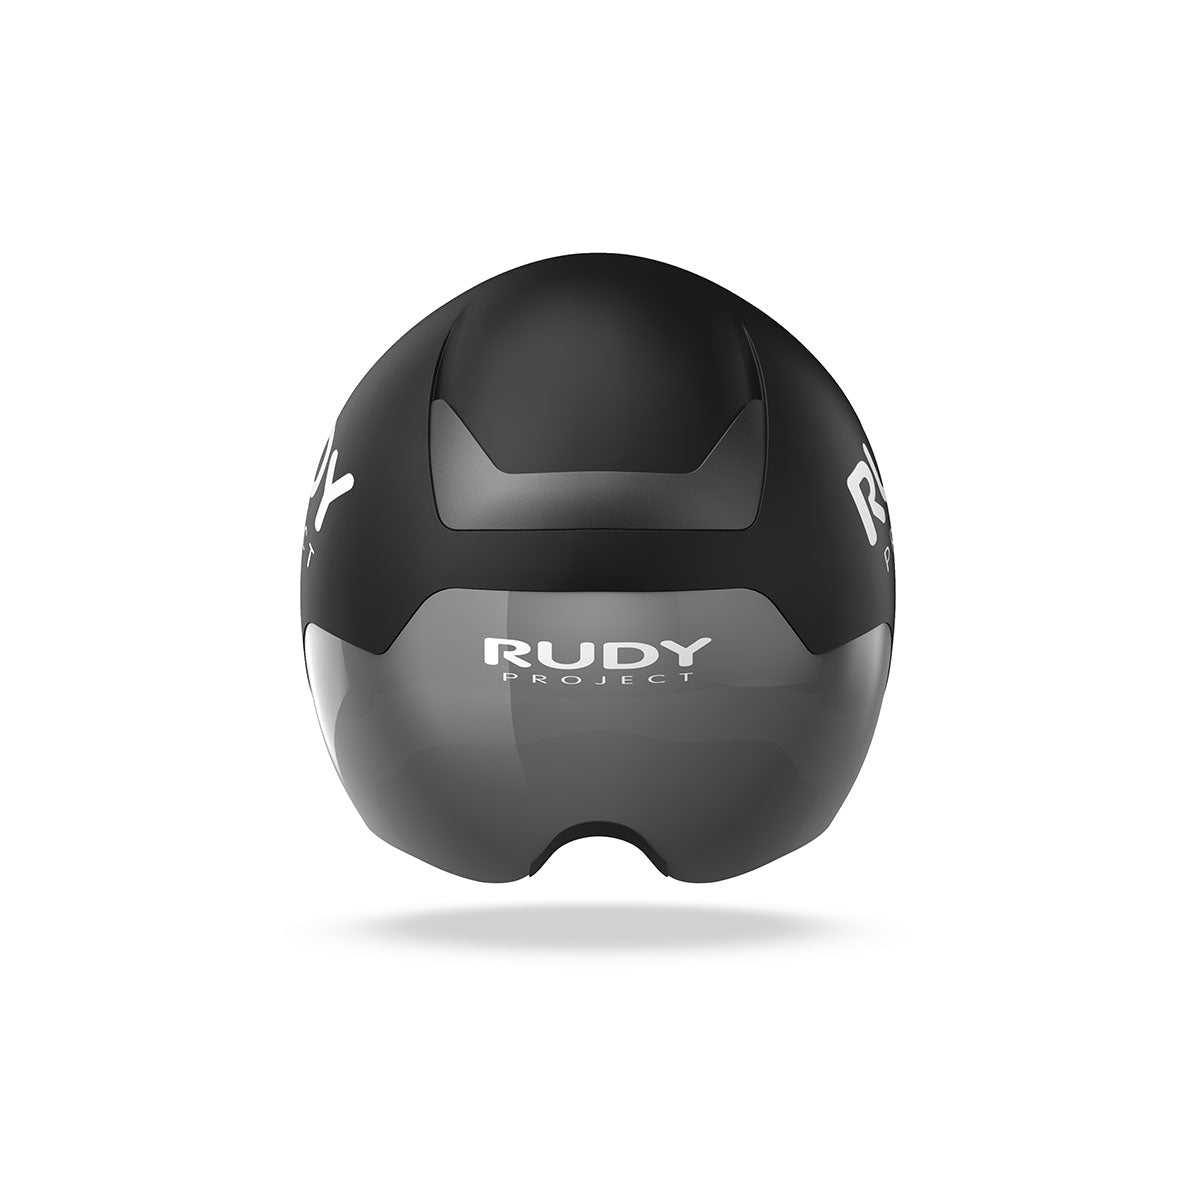 Rudy Project - The Wing - color: Black - photo angle: Front WIth Visor Variant Hover Image